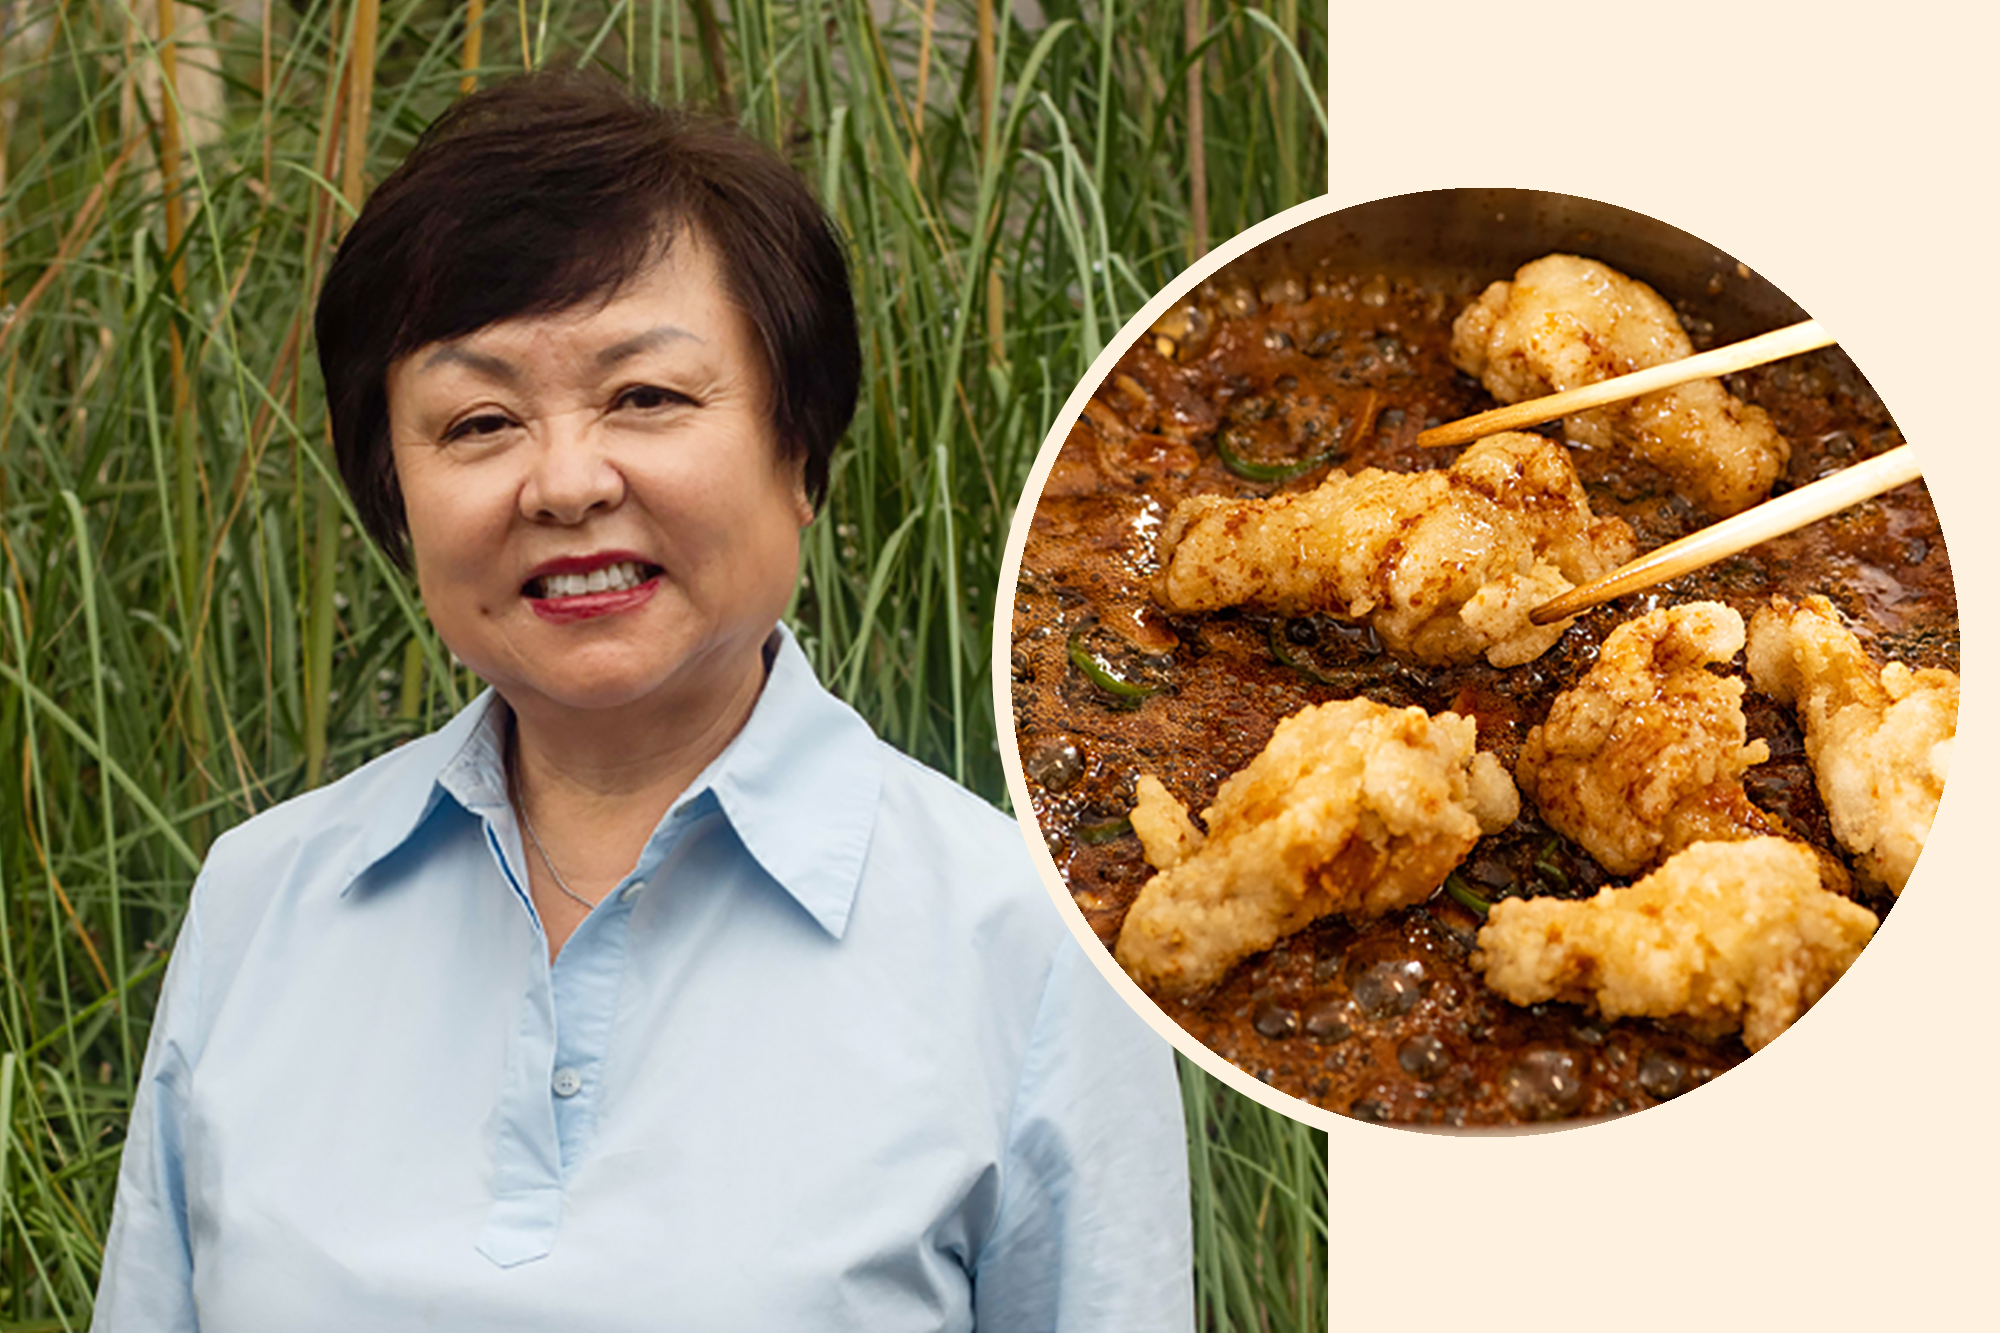 Auntie Georgia Song and her Dakgangjeong (Korean Fried Chicken with Soy Sauce)